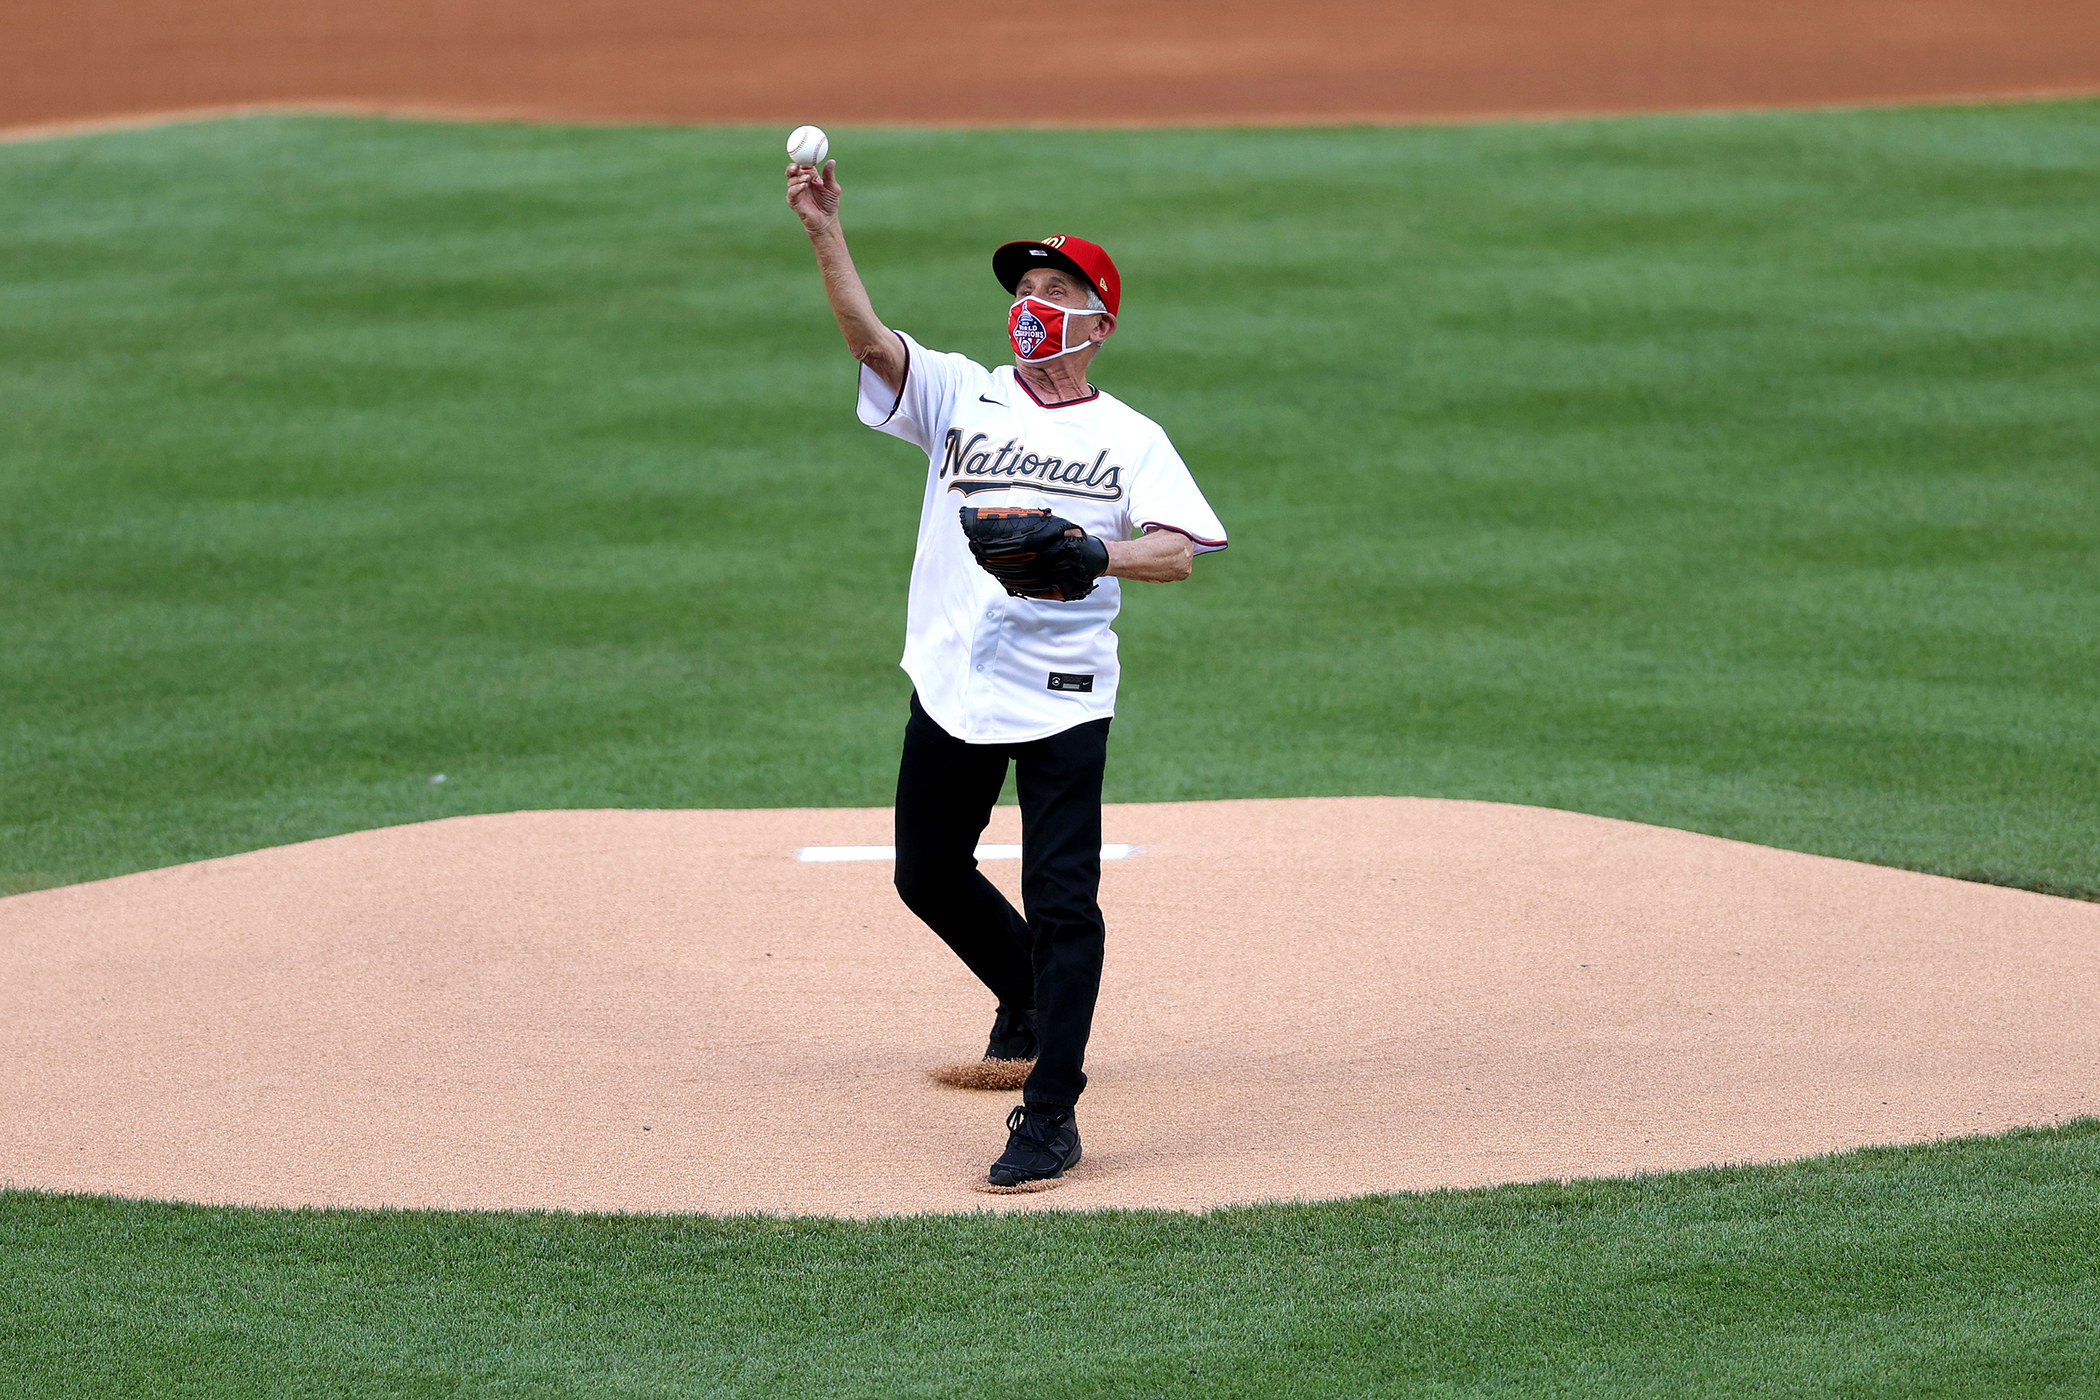 Anthony Fauci, wearing a Washington Nationals–branded cap, face mask, and jersey, stands on a mound and throws a baseball